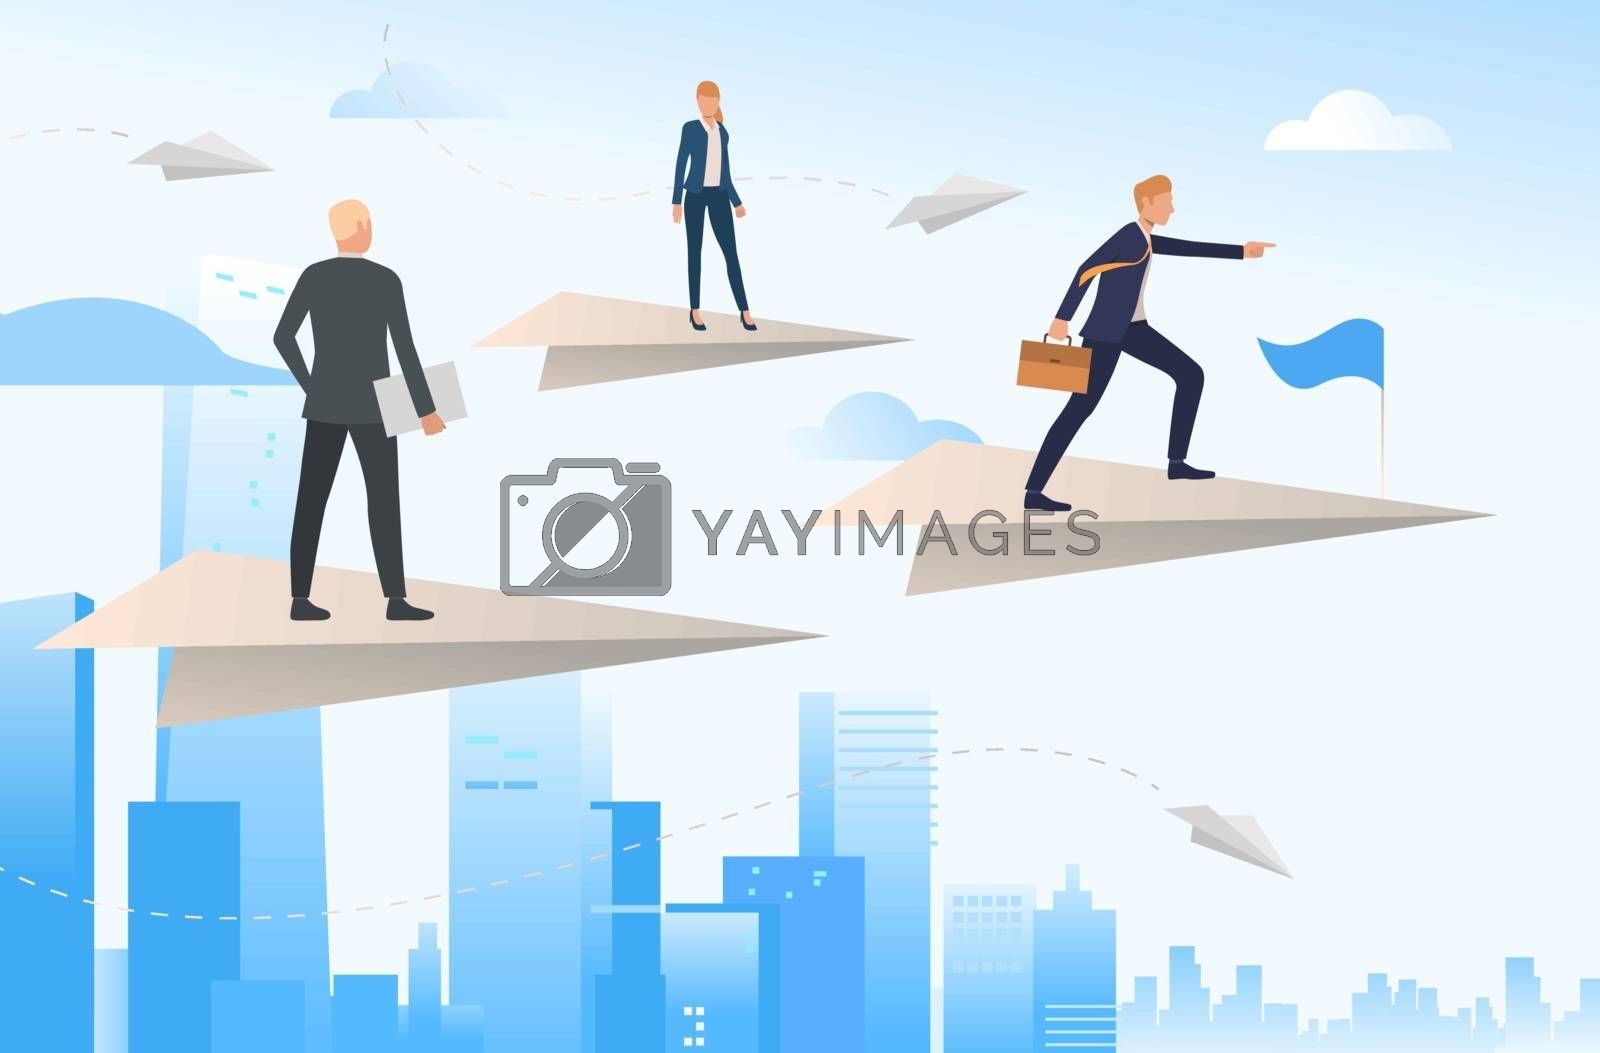 Business people standing on flying paper planes. Challenge, opportunity, travel, teamwork. Leadership concept. Vector illustration for topics like business, development, success